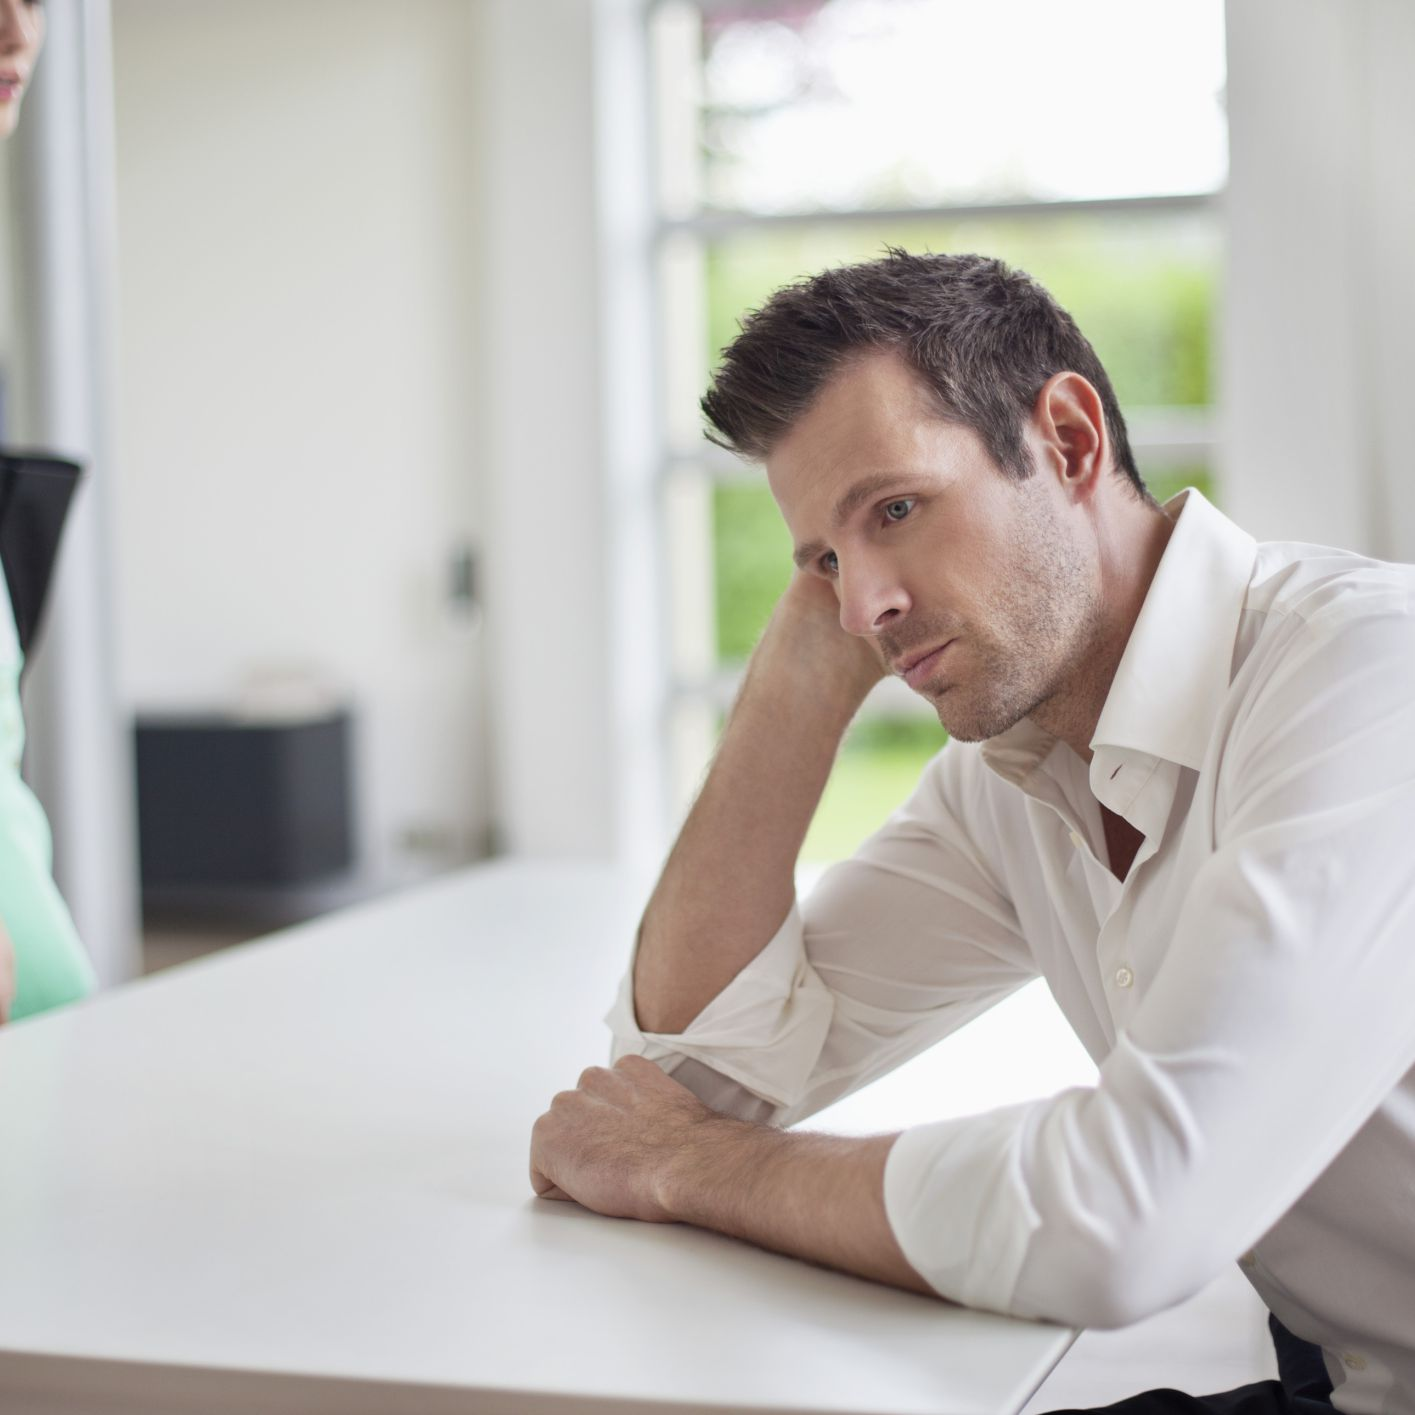 What to Do When Your Spouse Just Asked for a Divorce